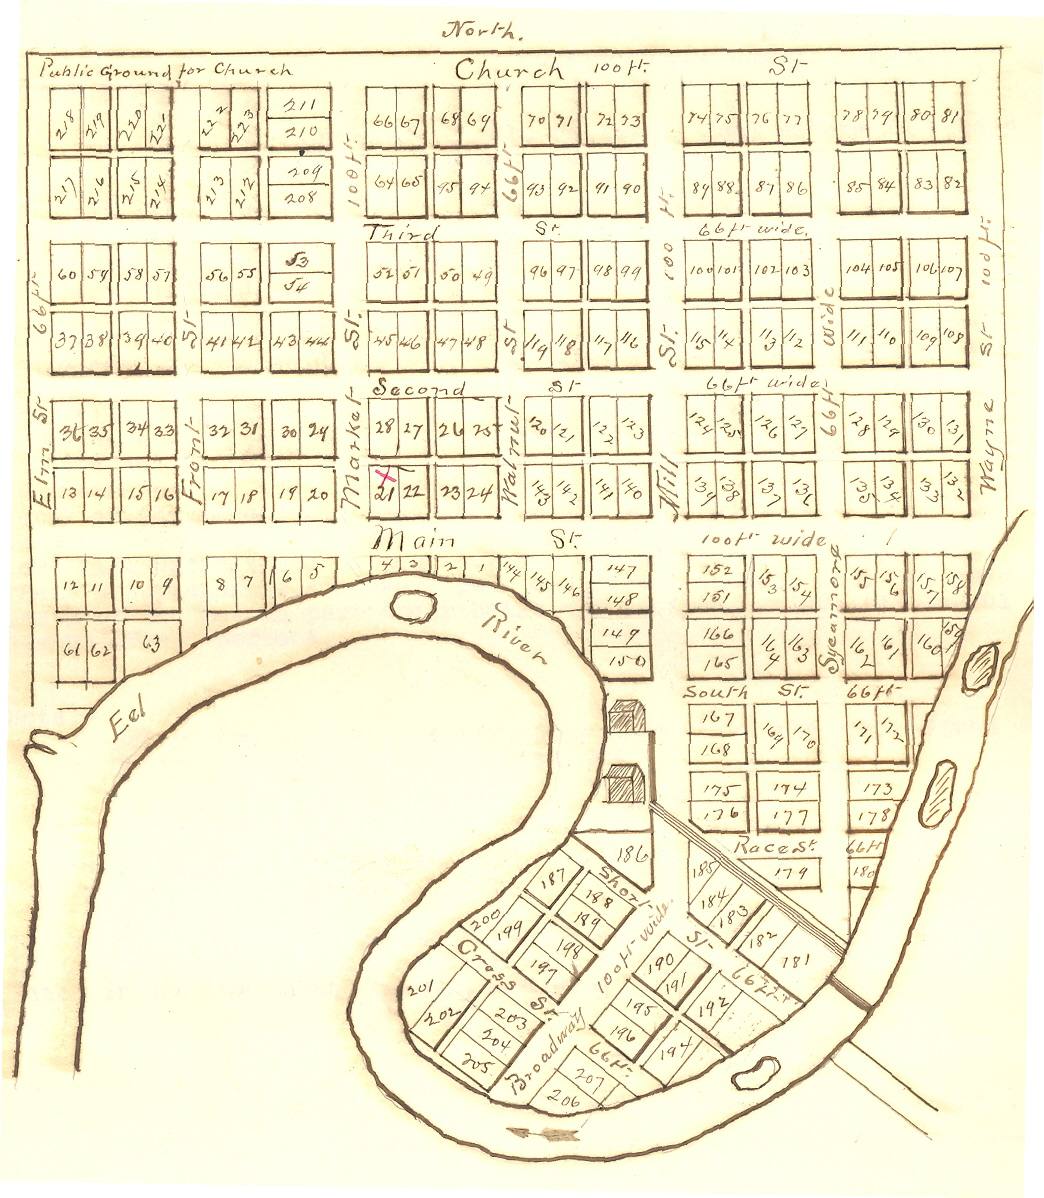 Original Plat of Town of Manchester